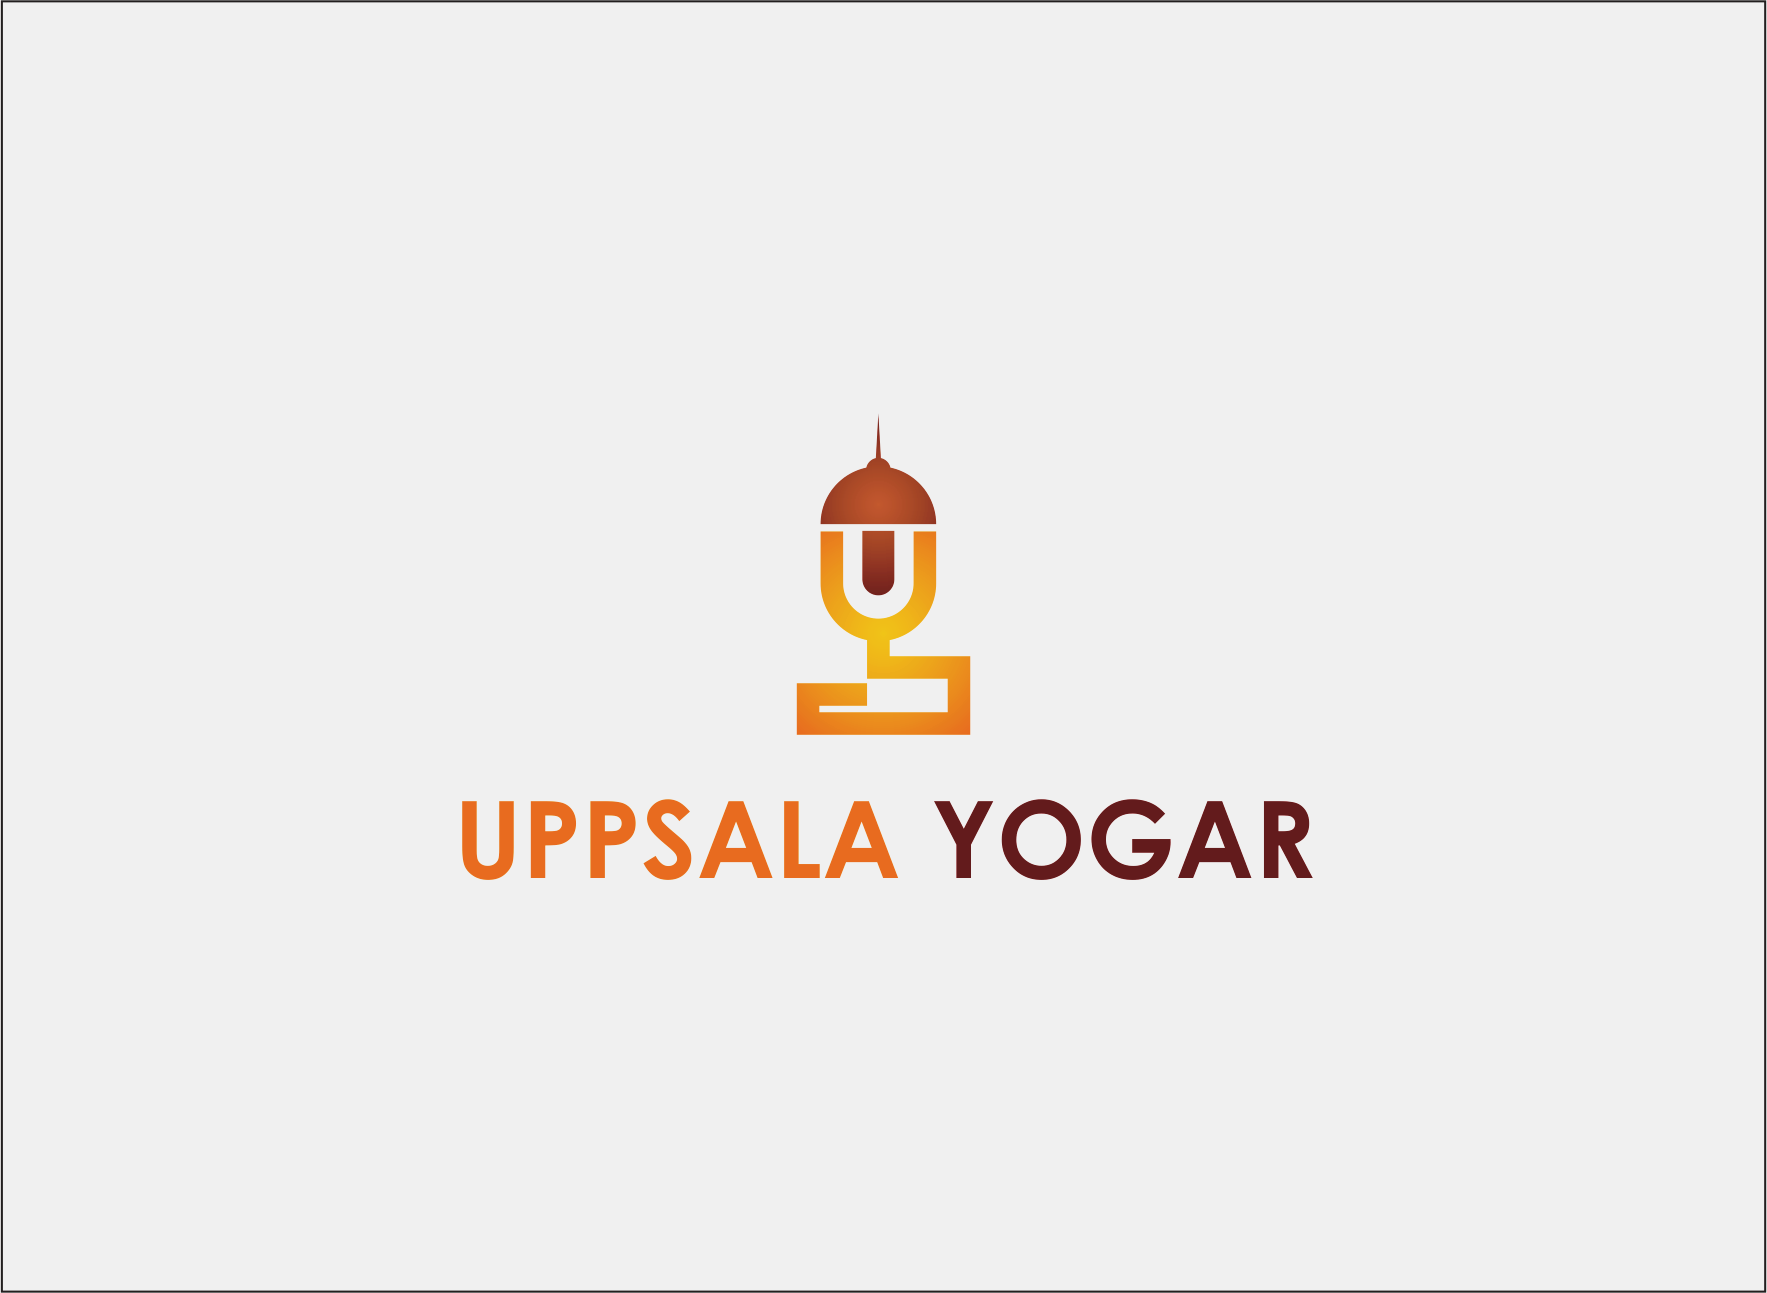 Logo Design by Armada Jamaluddin - Entry No. 66 in the Logo Design Contest Unique Logo Design Wanted for Uppsala Yogar.